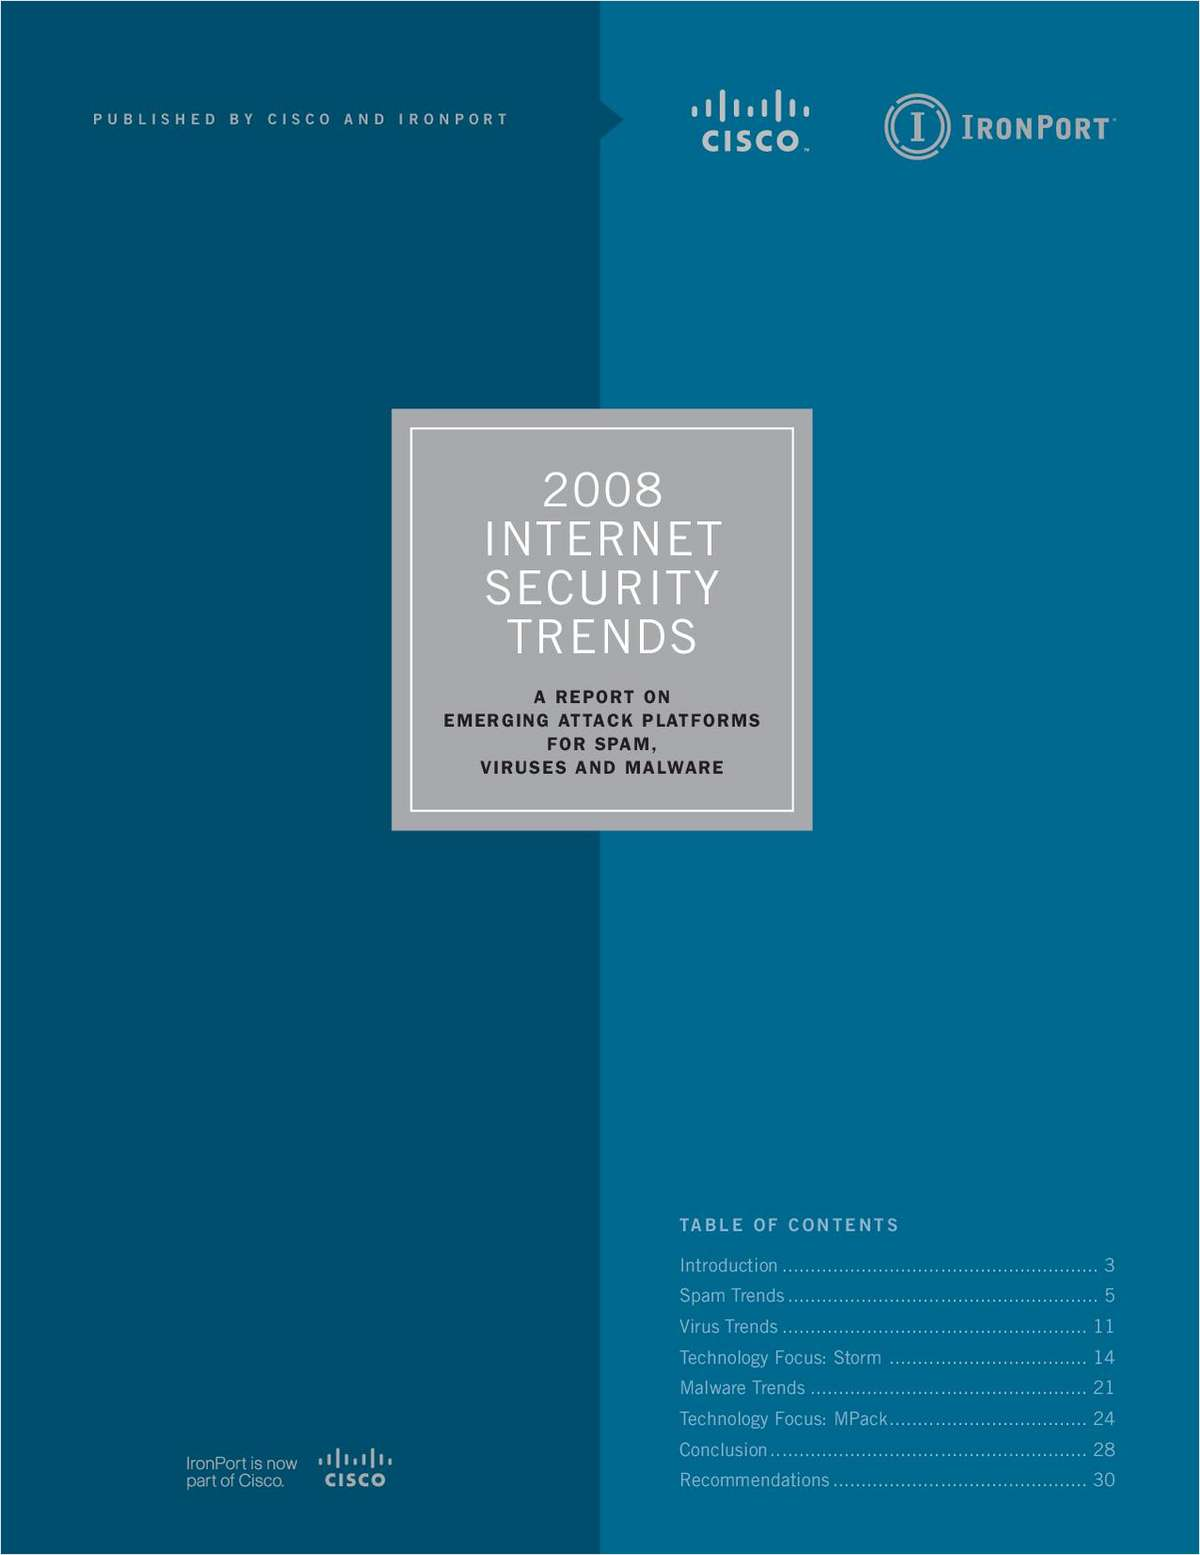 2008 Internet Security Trends